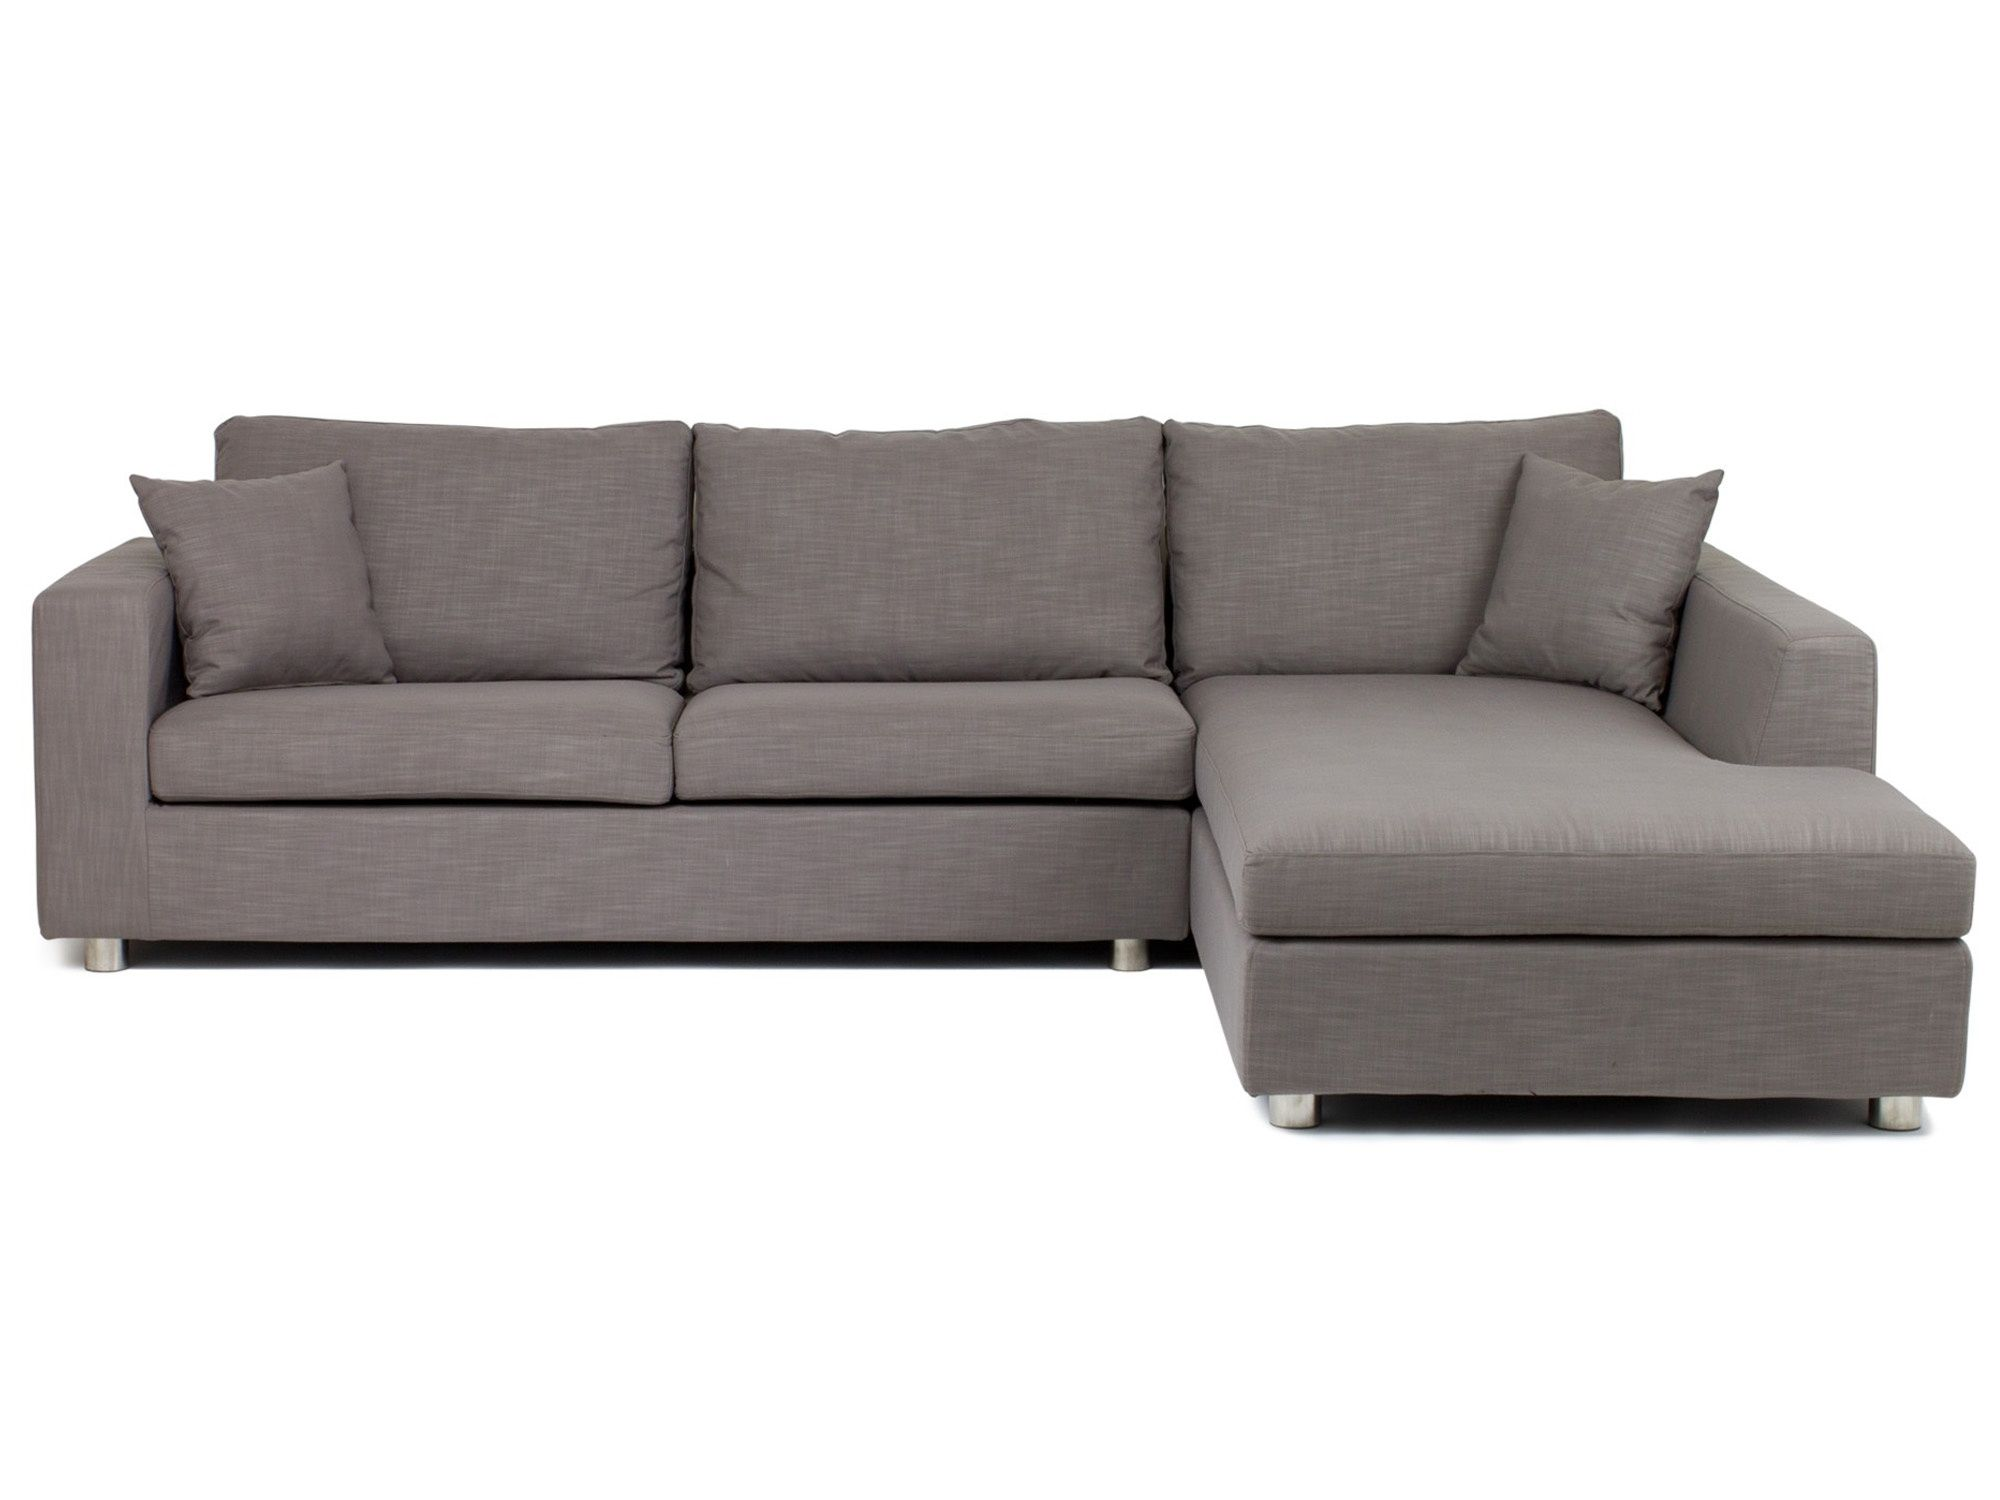 Corner Sofa Bed With Chaise Storage Sofa Bed With Chaise Sectional Sleeper Sofa Chaise Sofa